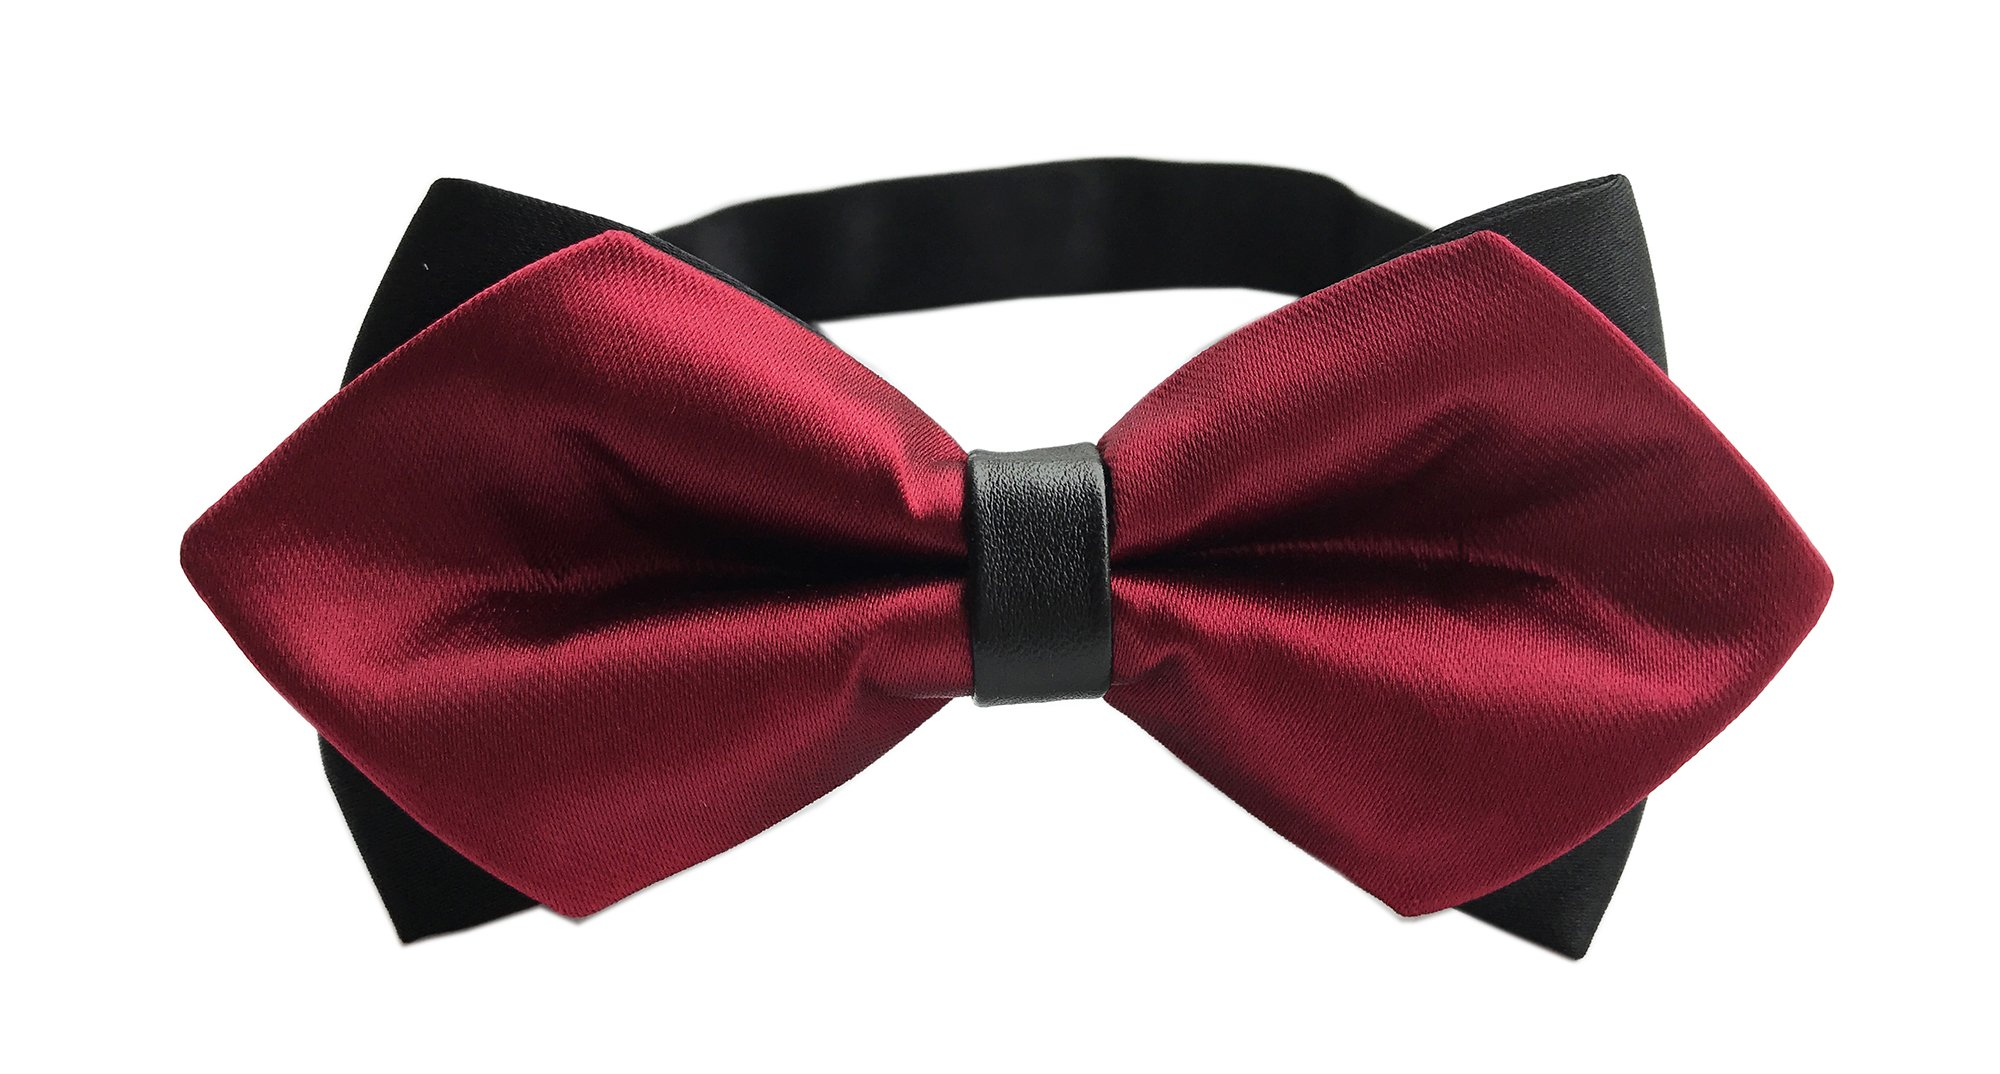 Big Boys Men's Solid Burgundy Red Bow Tie Adjustable Banded Wedding Bowties Gift